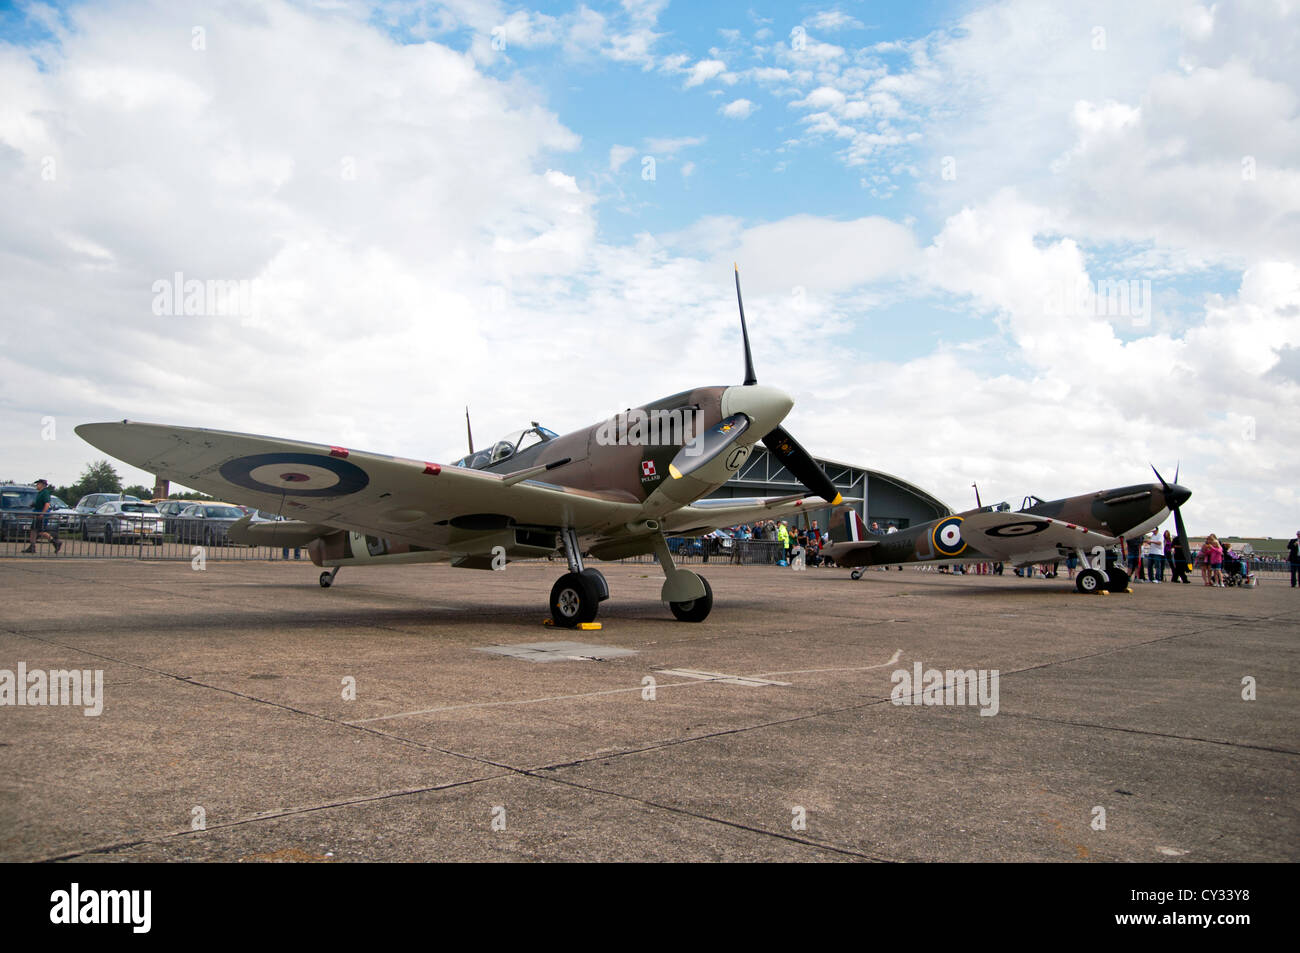 Display of Battle of Britain Spitfire Aircraft - Stock Image